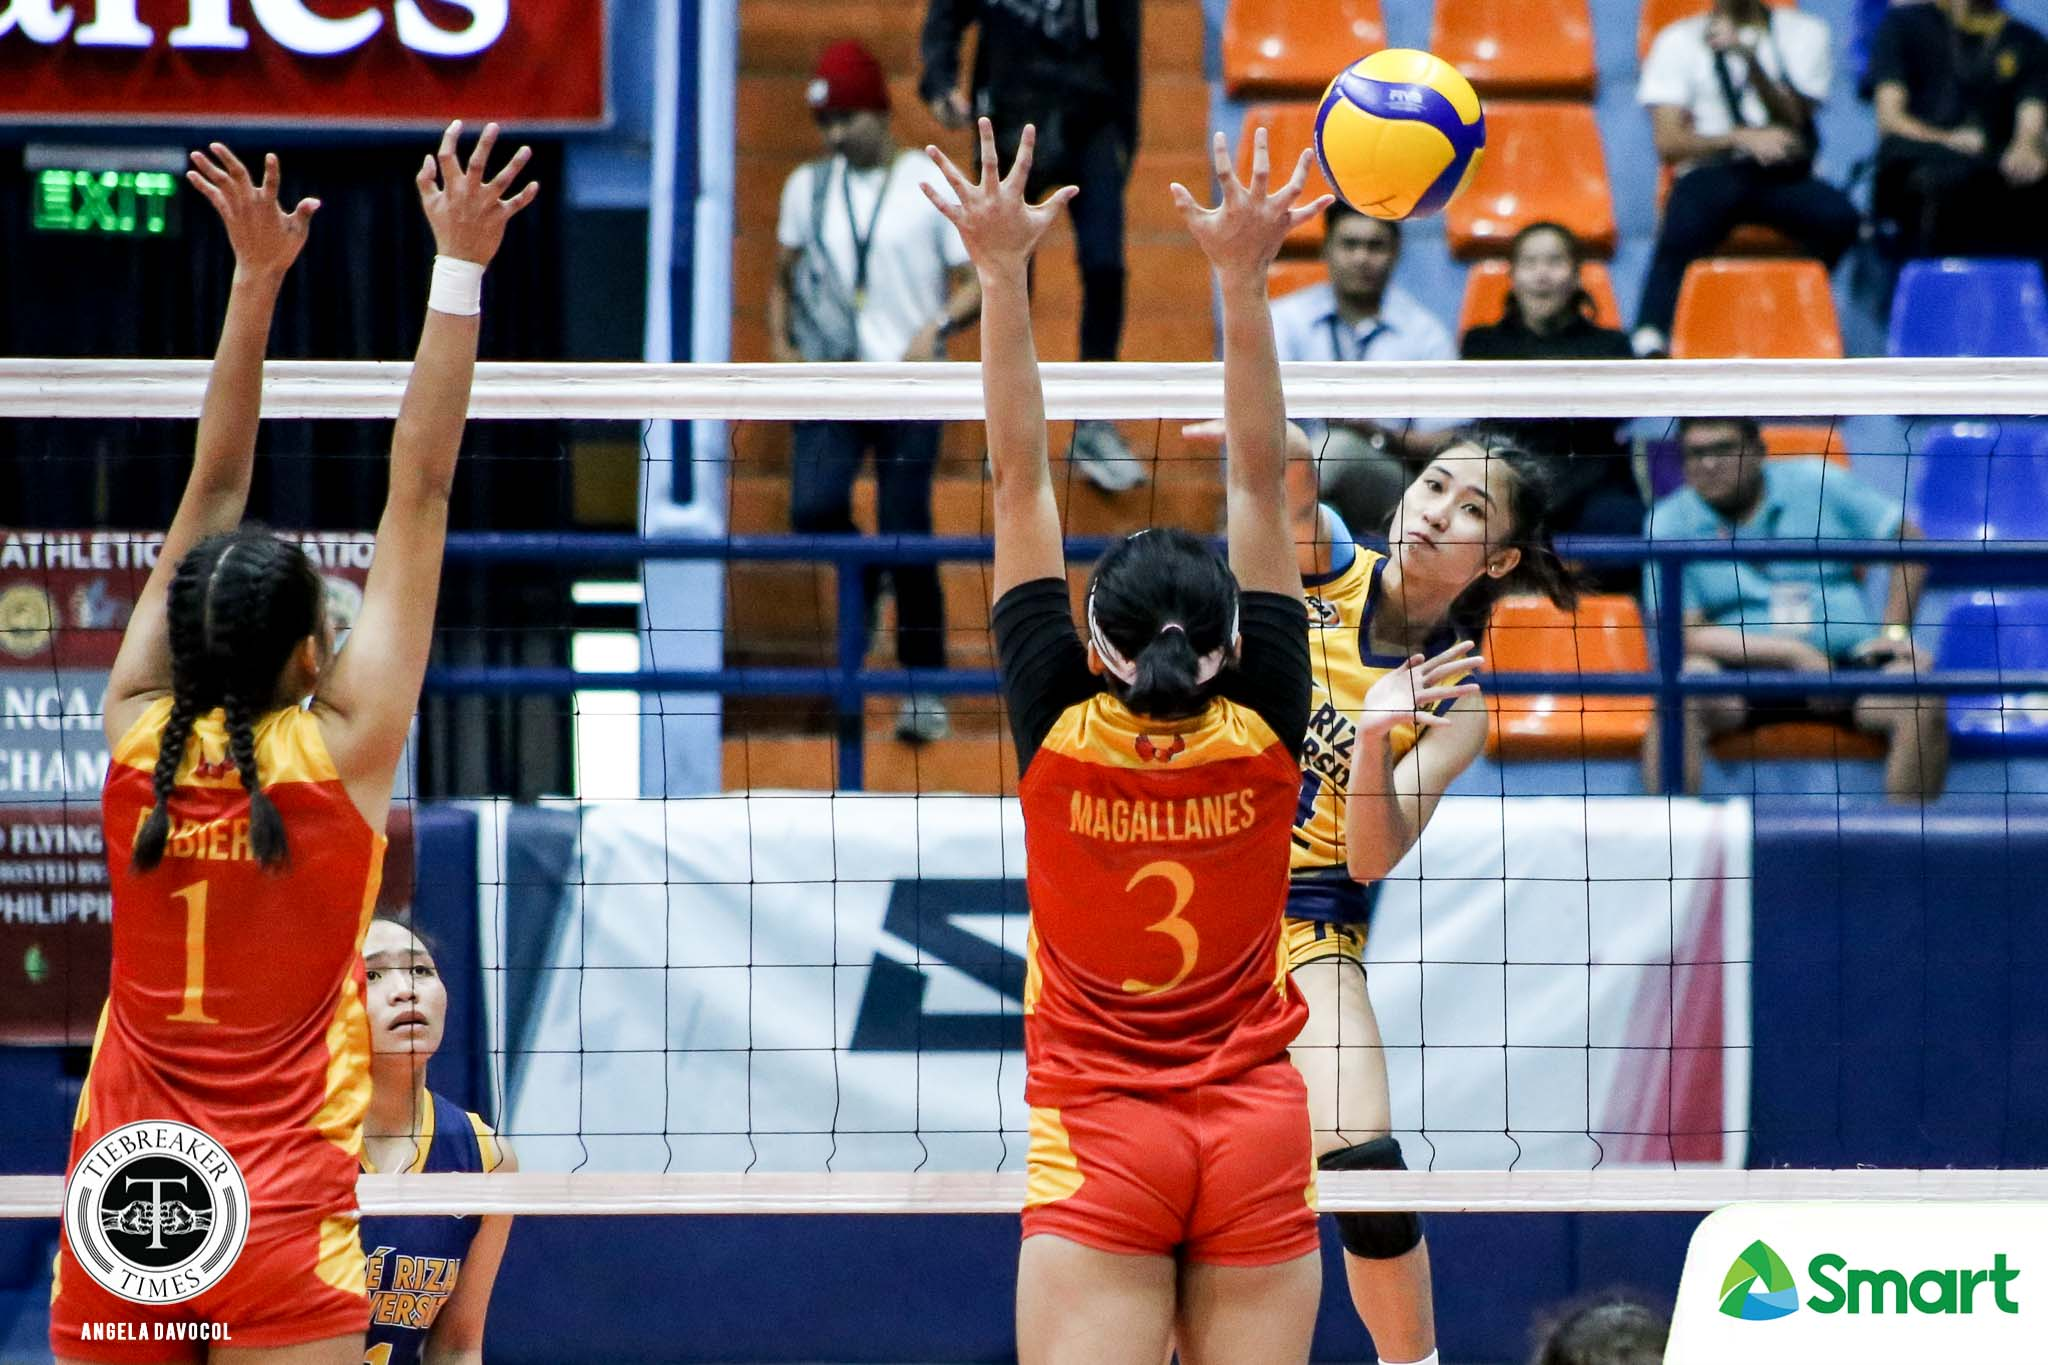 Tiebreaker Times JRU Lady Bombers blast Mapua for second straight win in NCAA 95 JRU MIT NCAA News Volleyball  Sydney Niegos NCAA Season 95 Women's Volleyball NCAA Season 95 Mia Tioseco Mapua Women's Volleyball JRU Women's Volleyball Jonina Fernandez Dolly Versoza Clarence Esteban Angel Bautista Alissa Magallanes